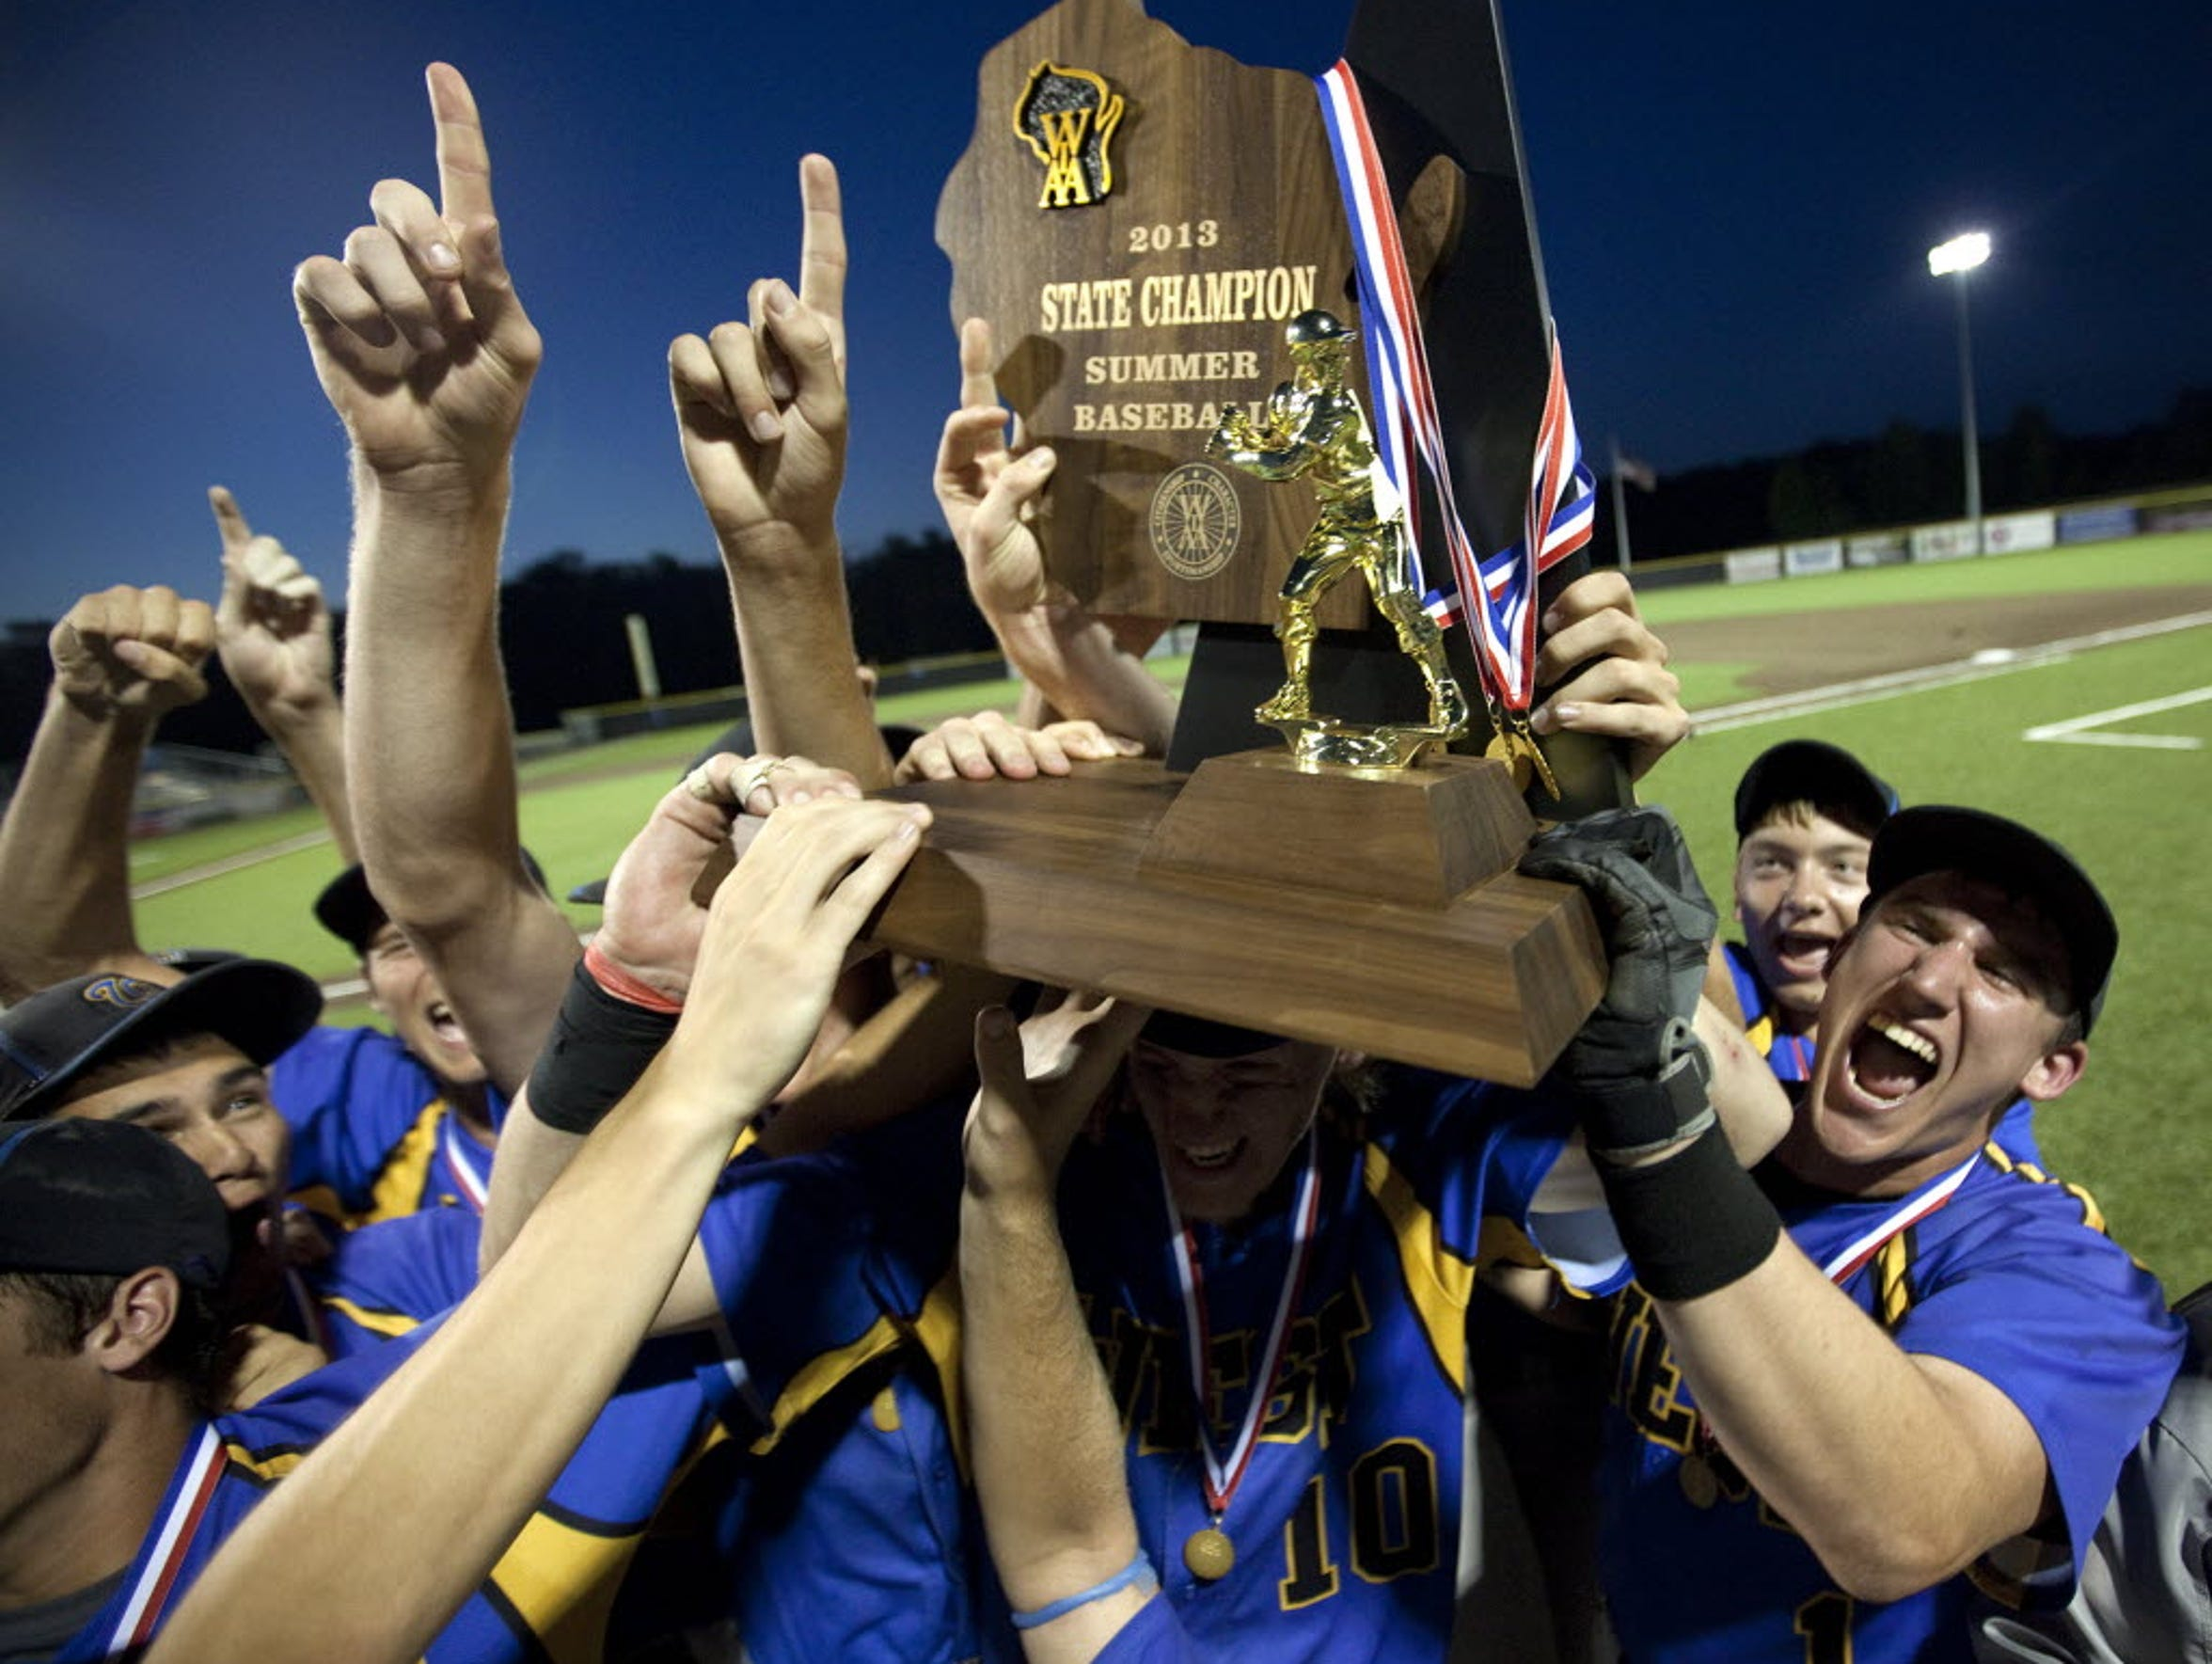 New Berlin West won seven straight games to close out